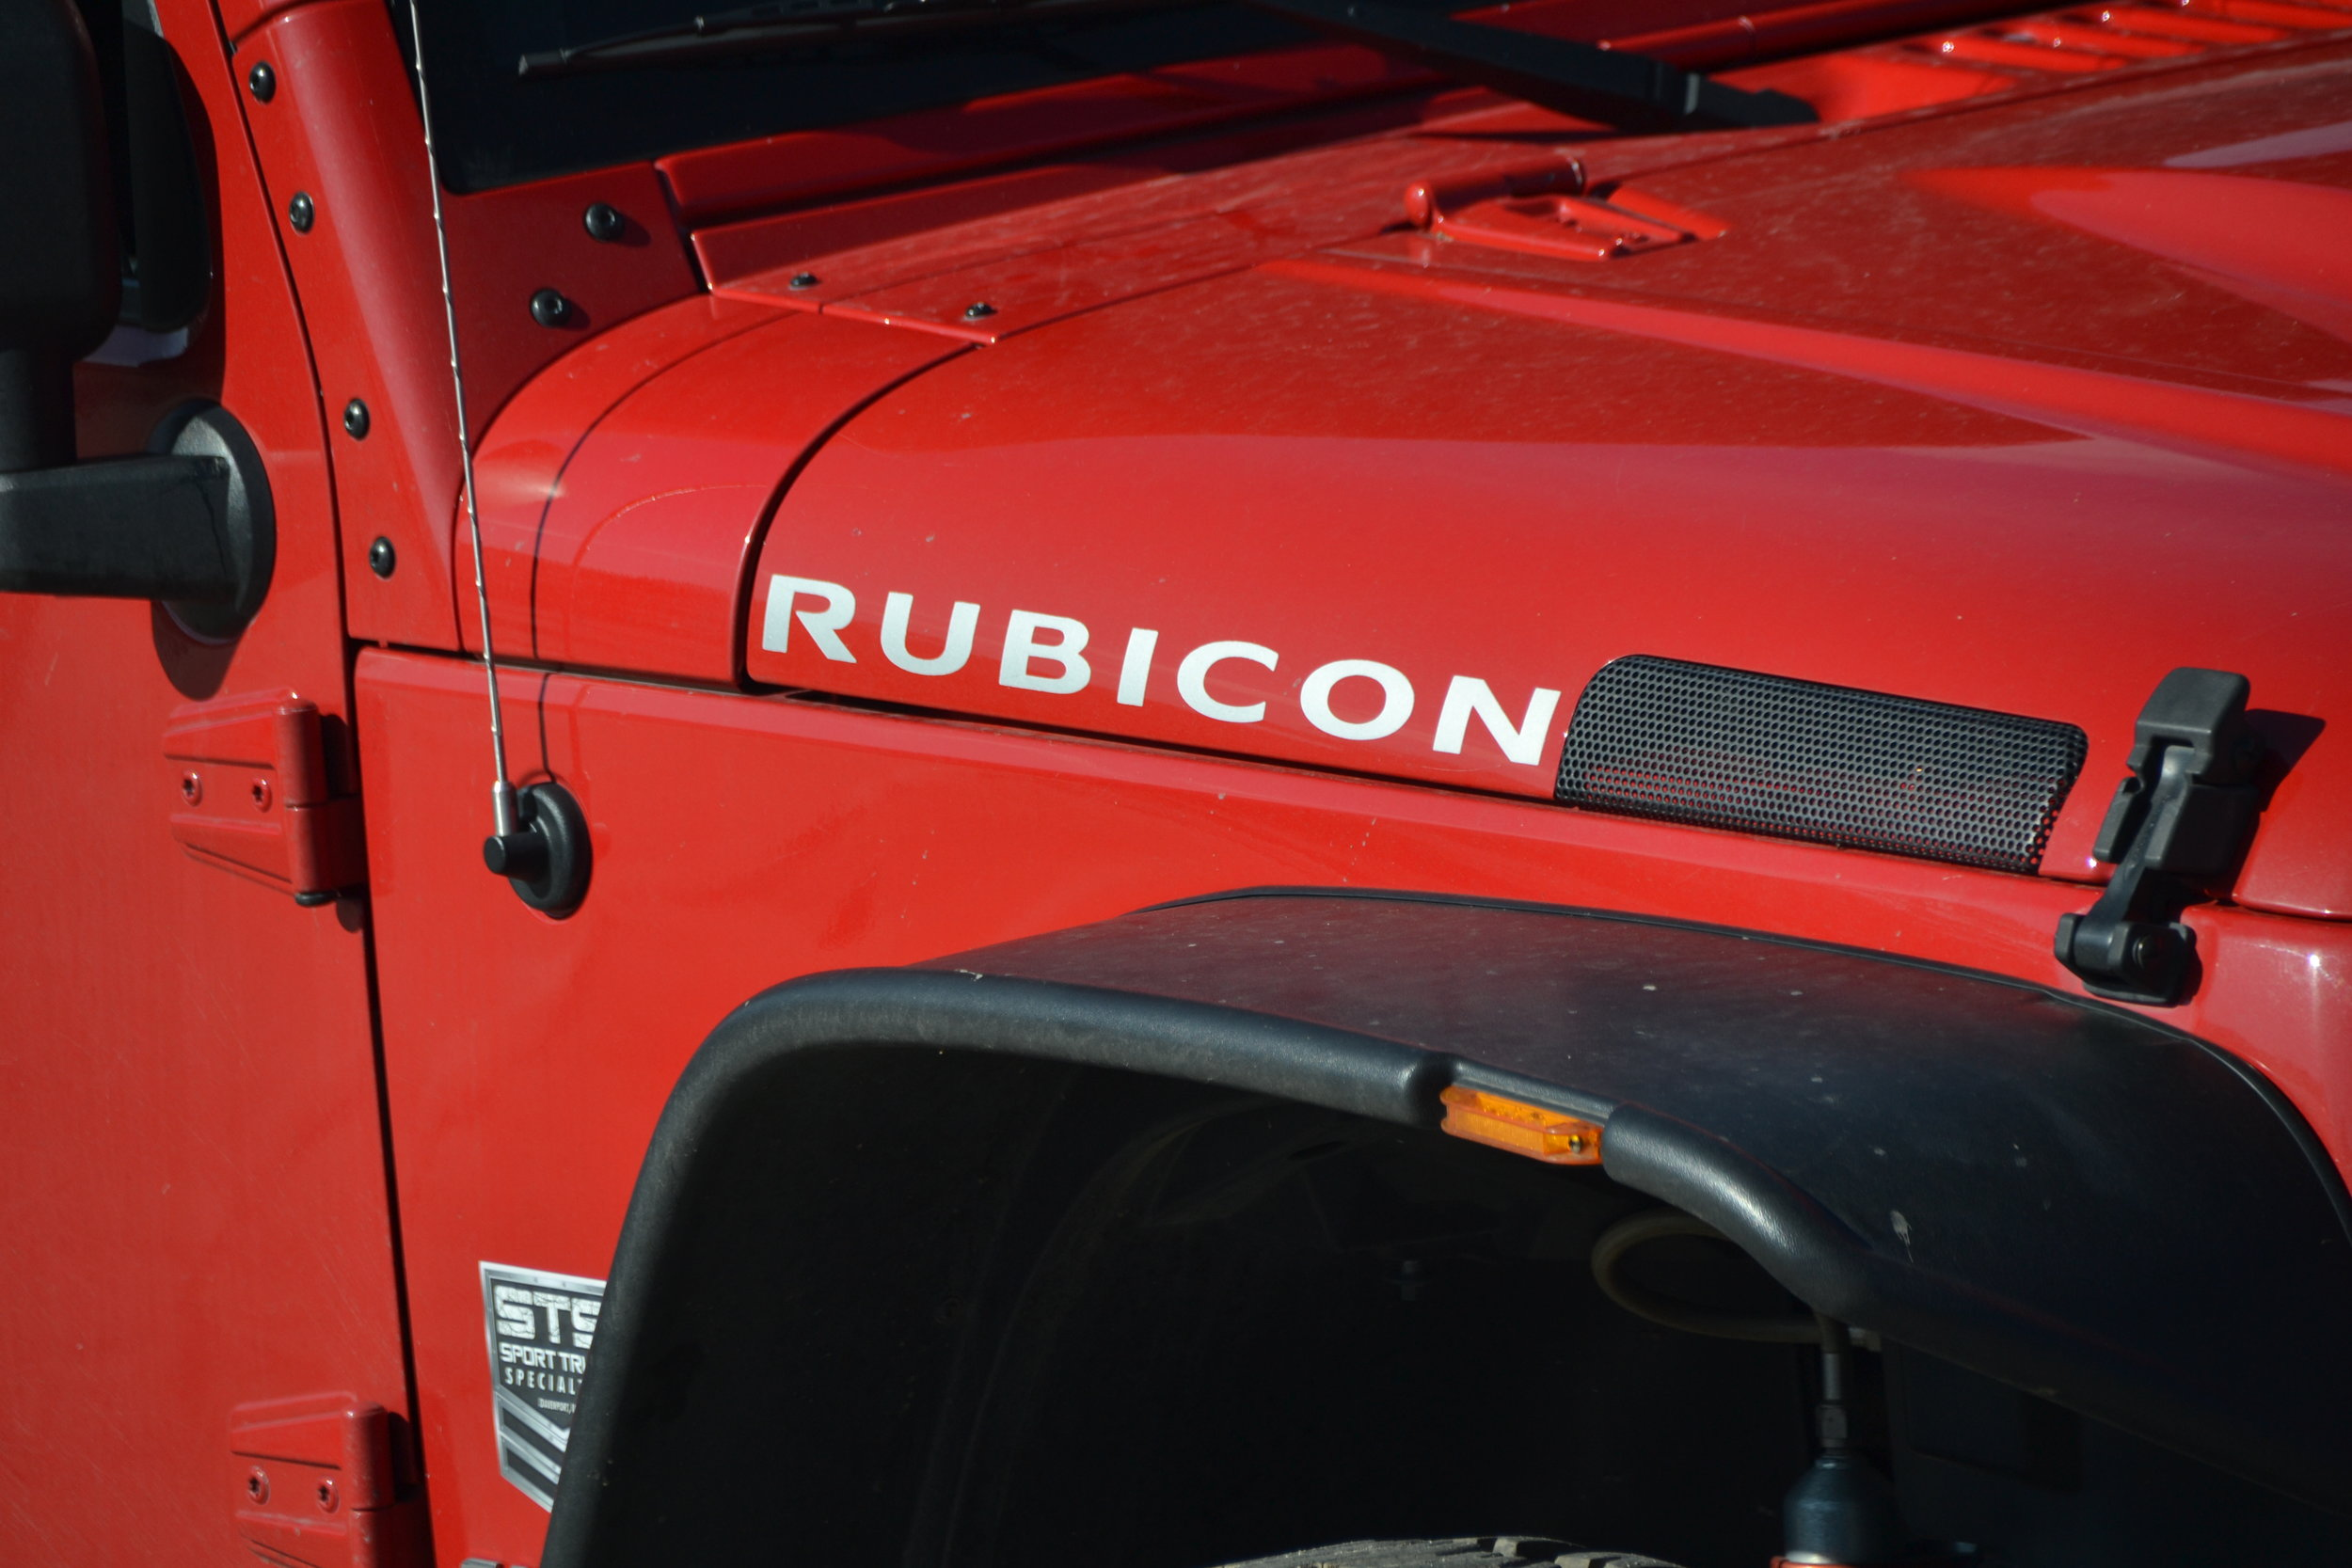 Specialized Truck & SUV Rubicon